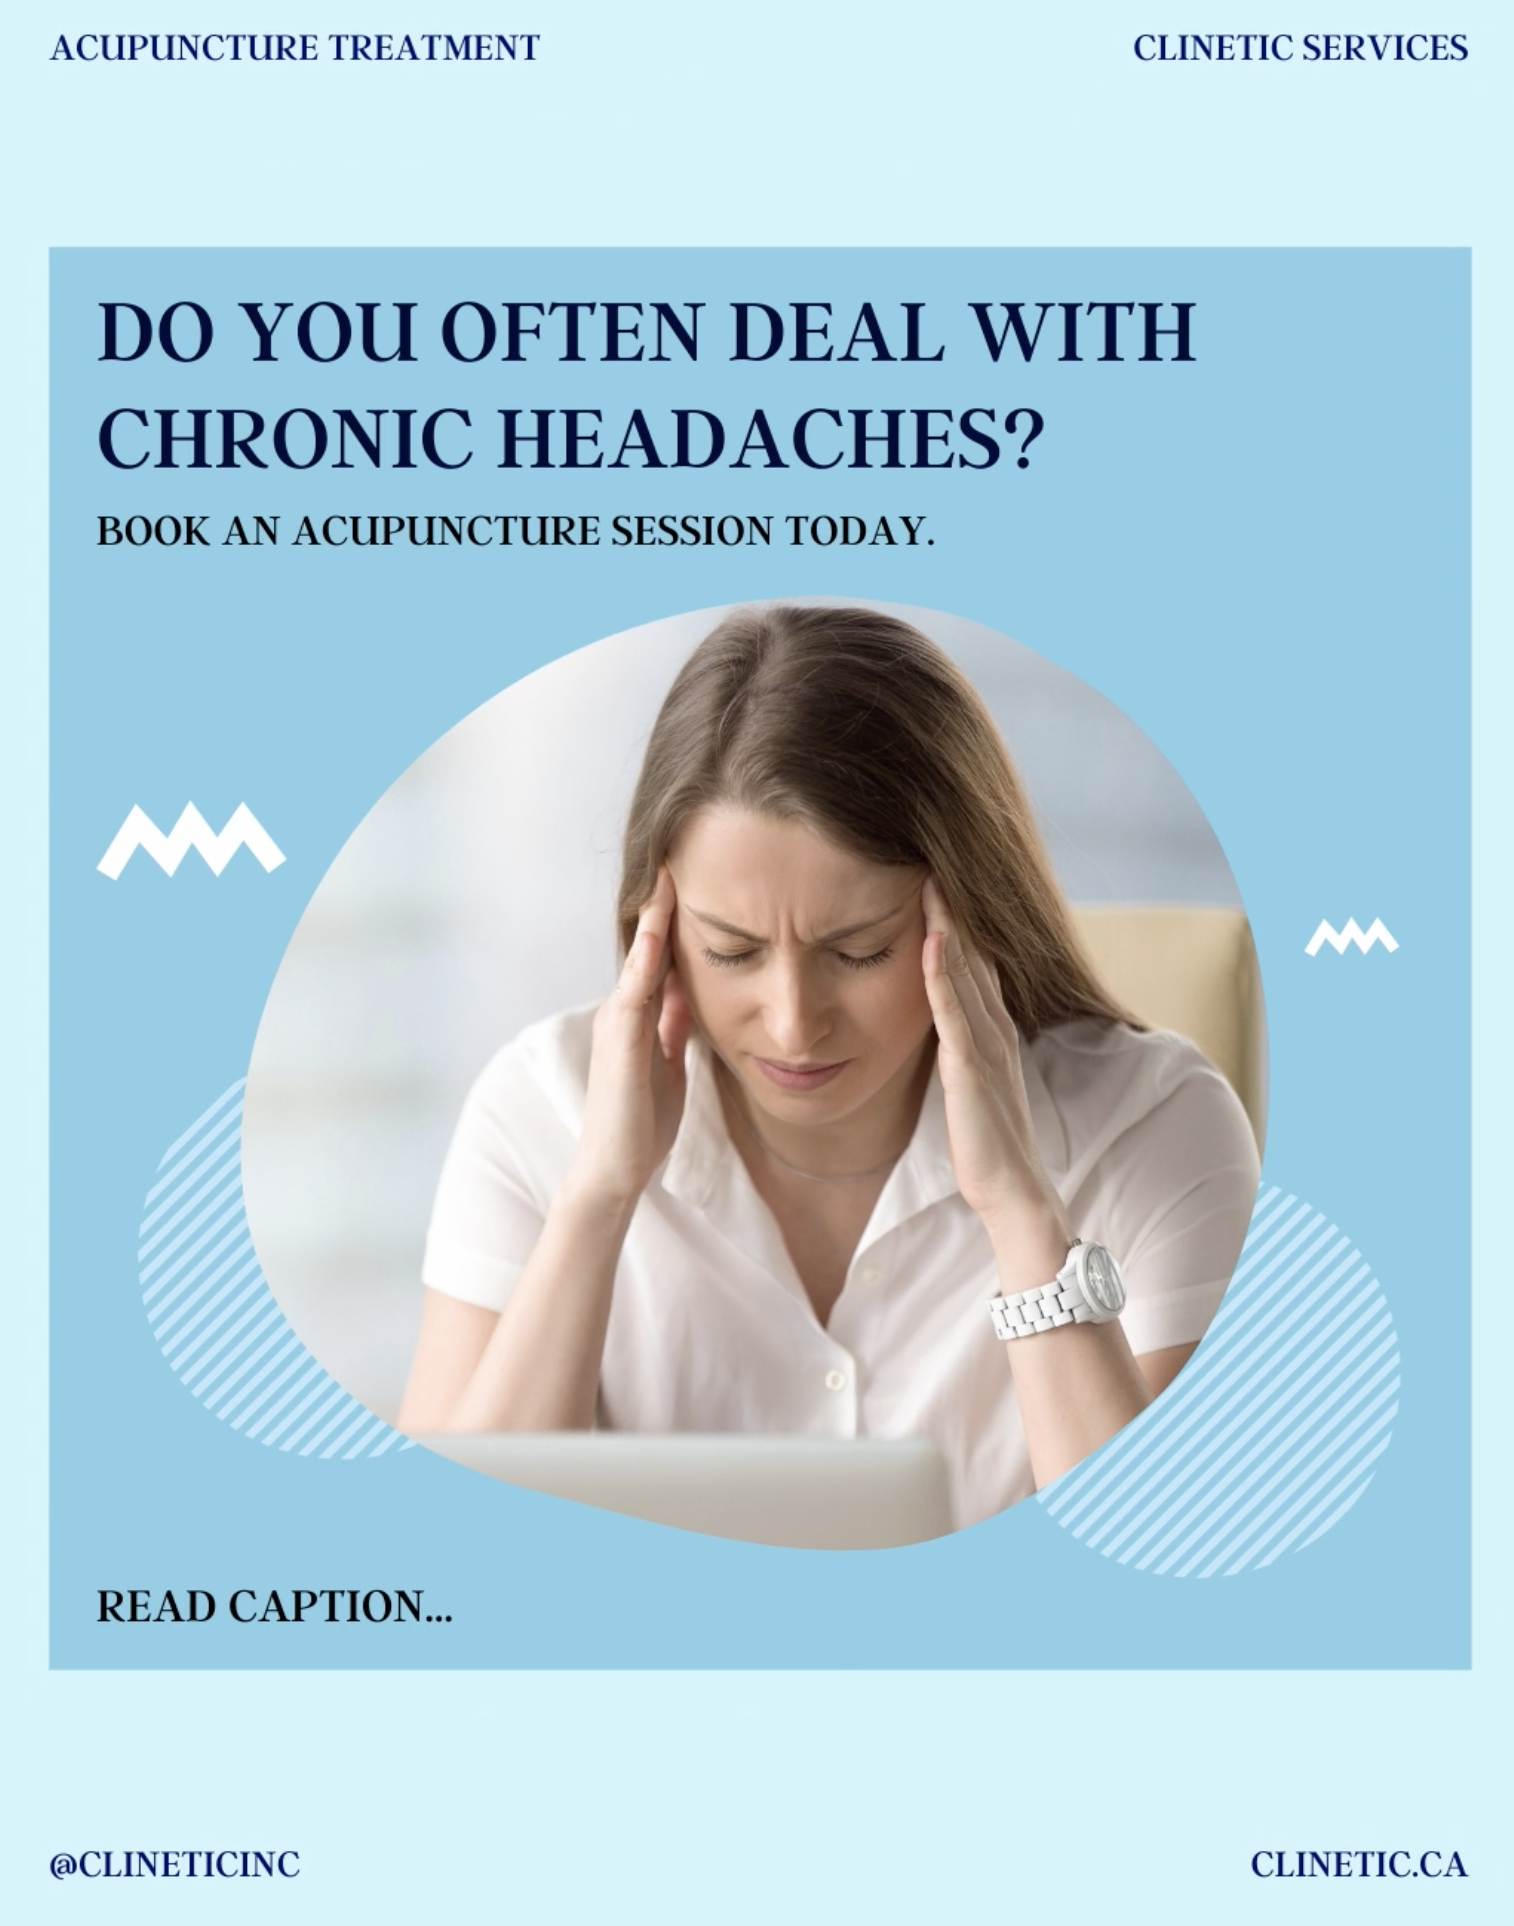 Do you often deal with chronic headaches?